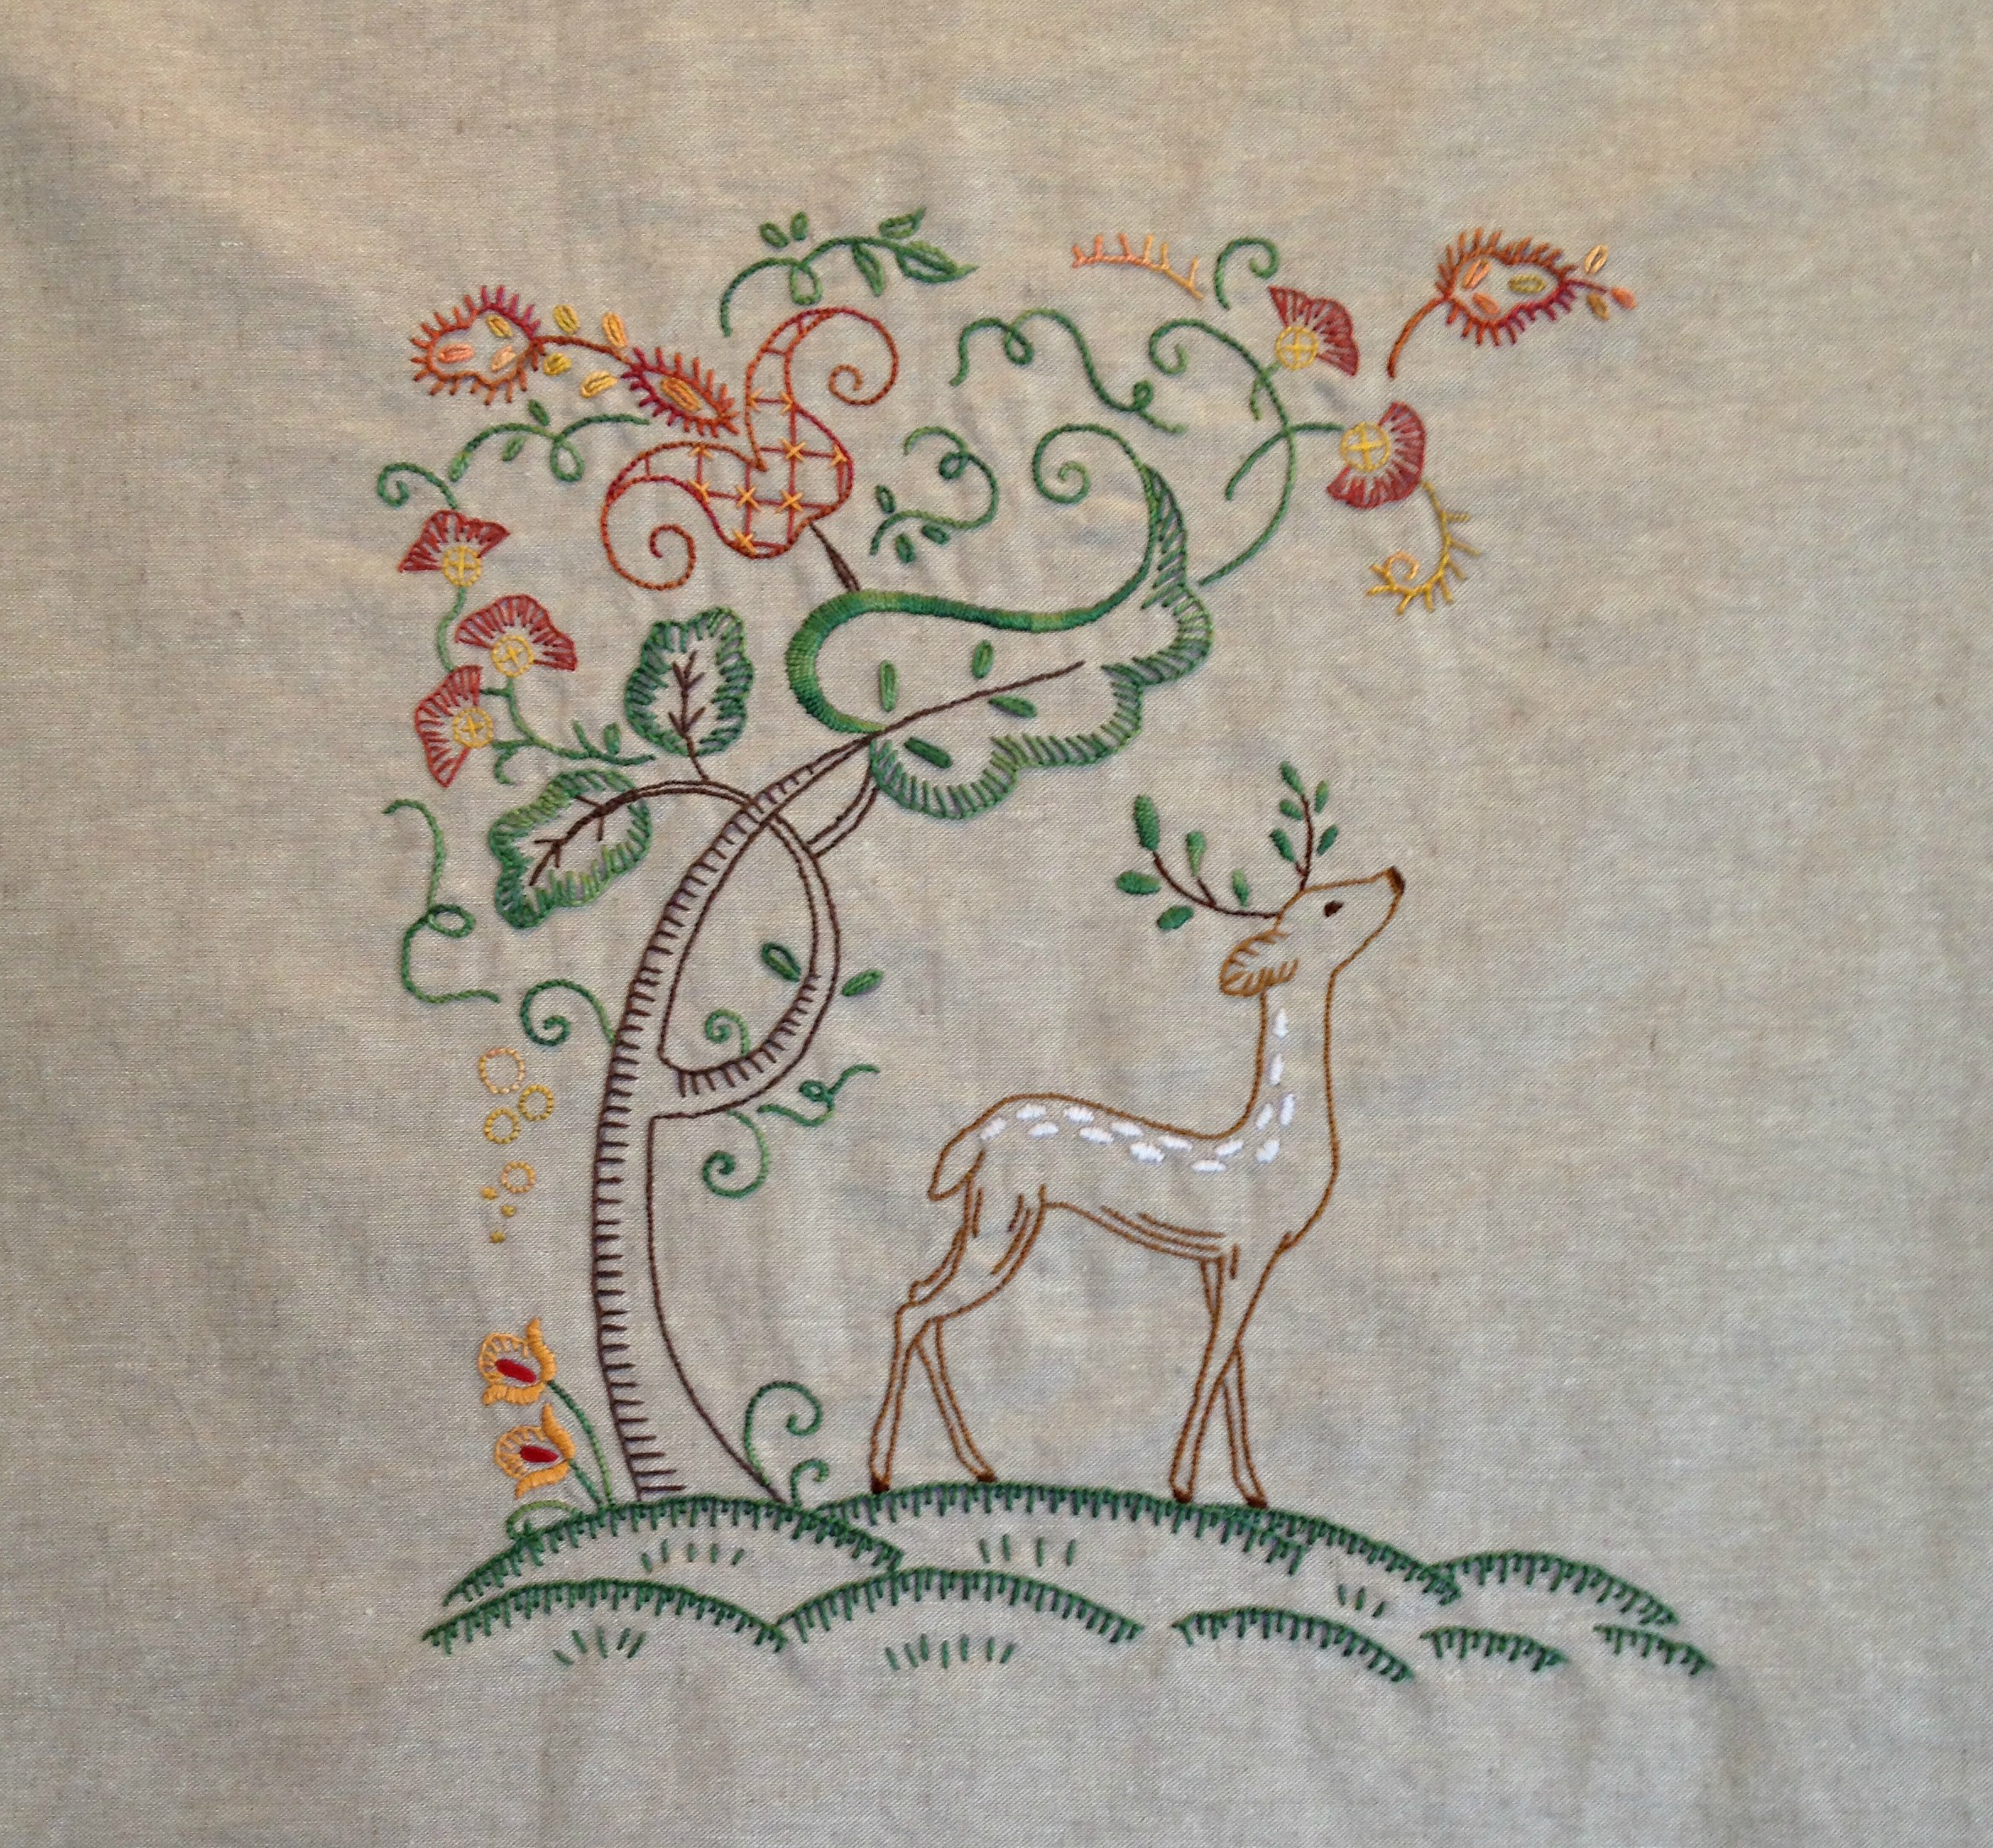 Finished embroidery